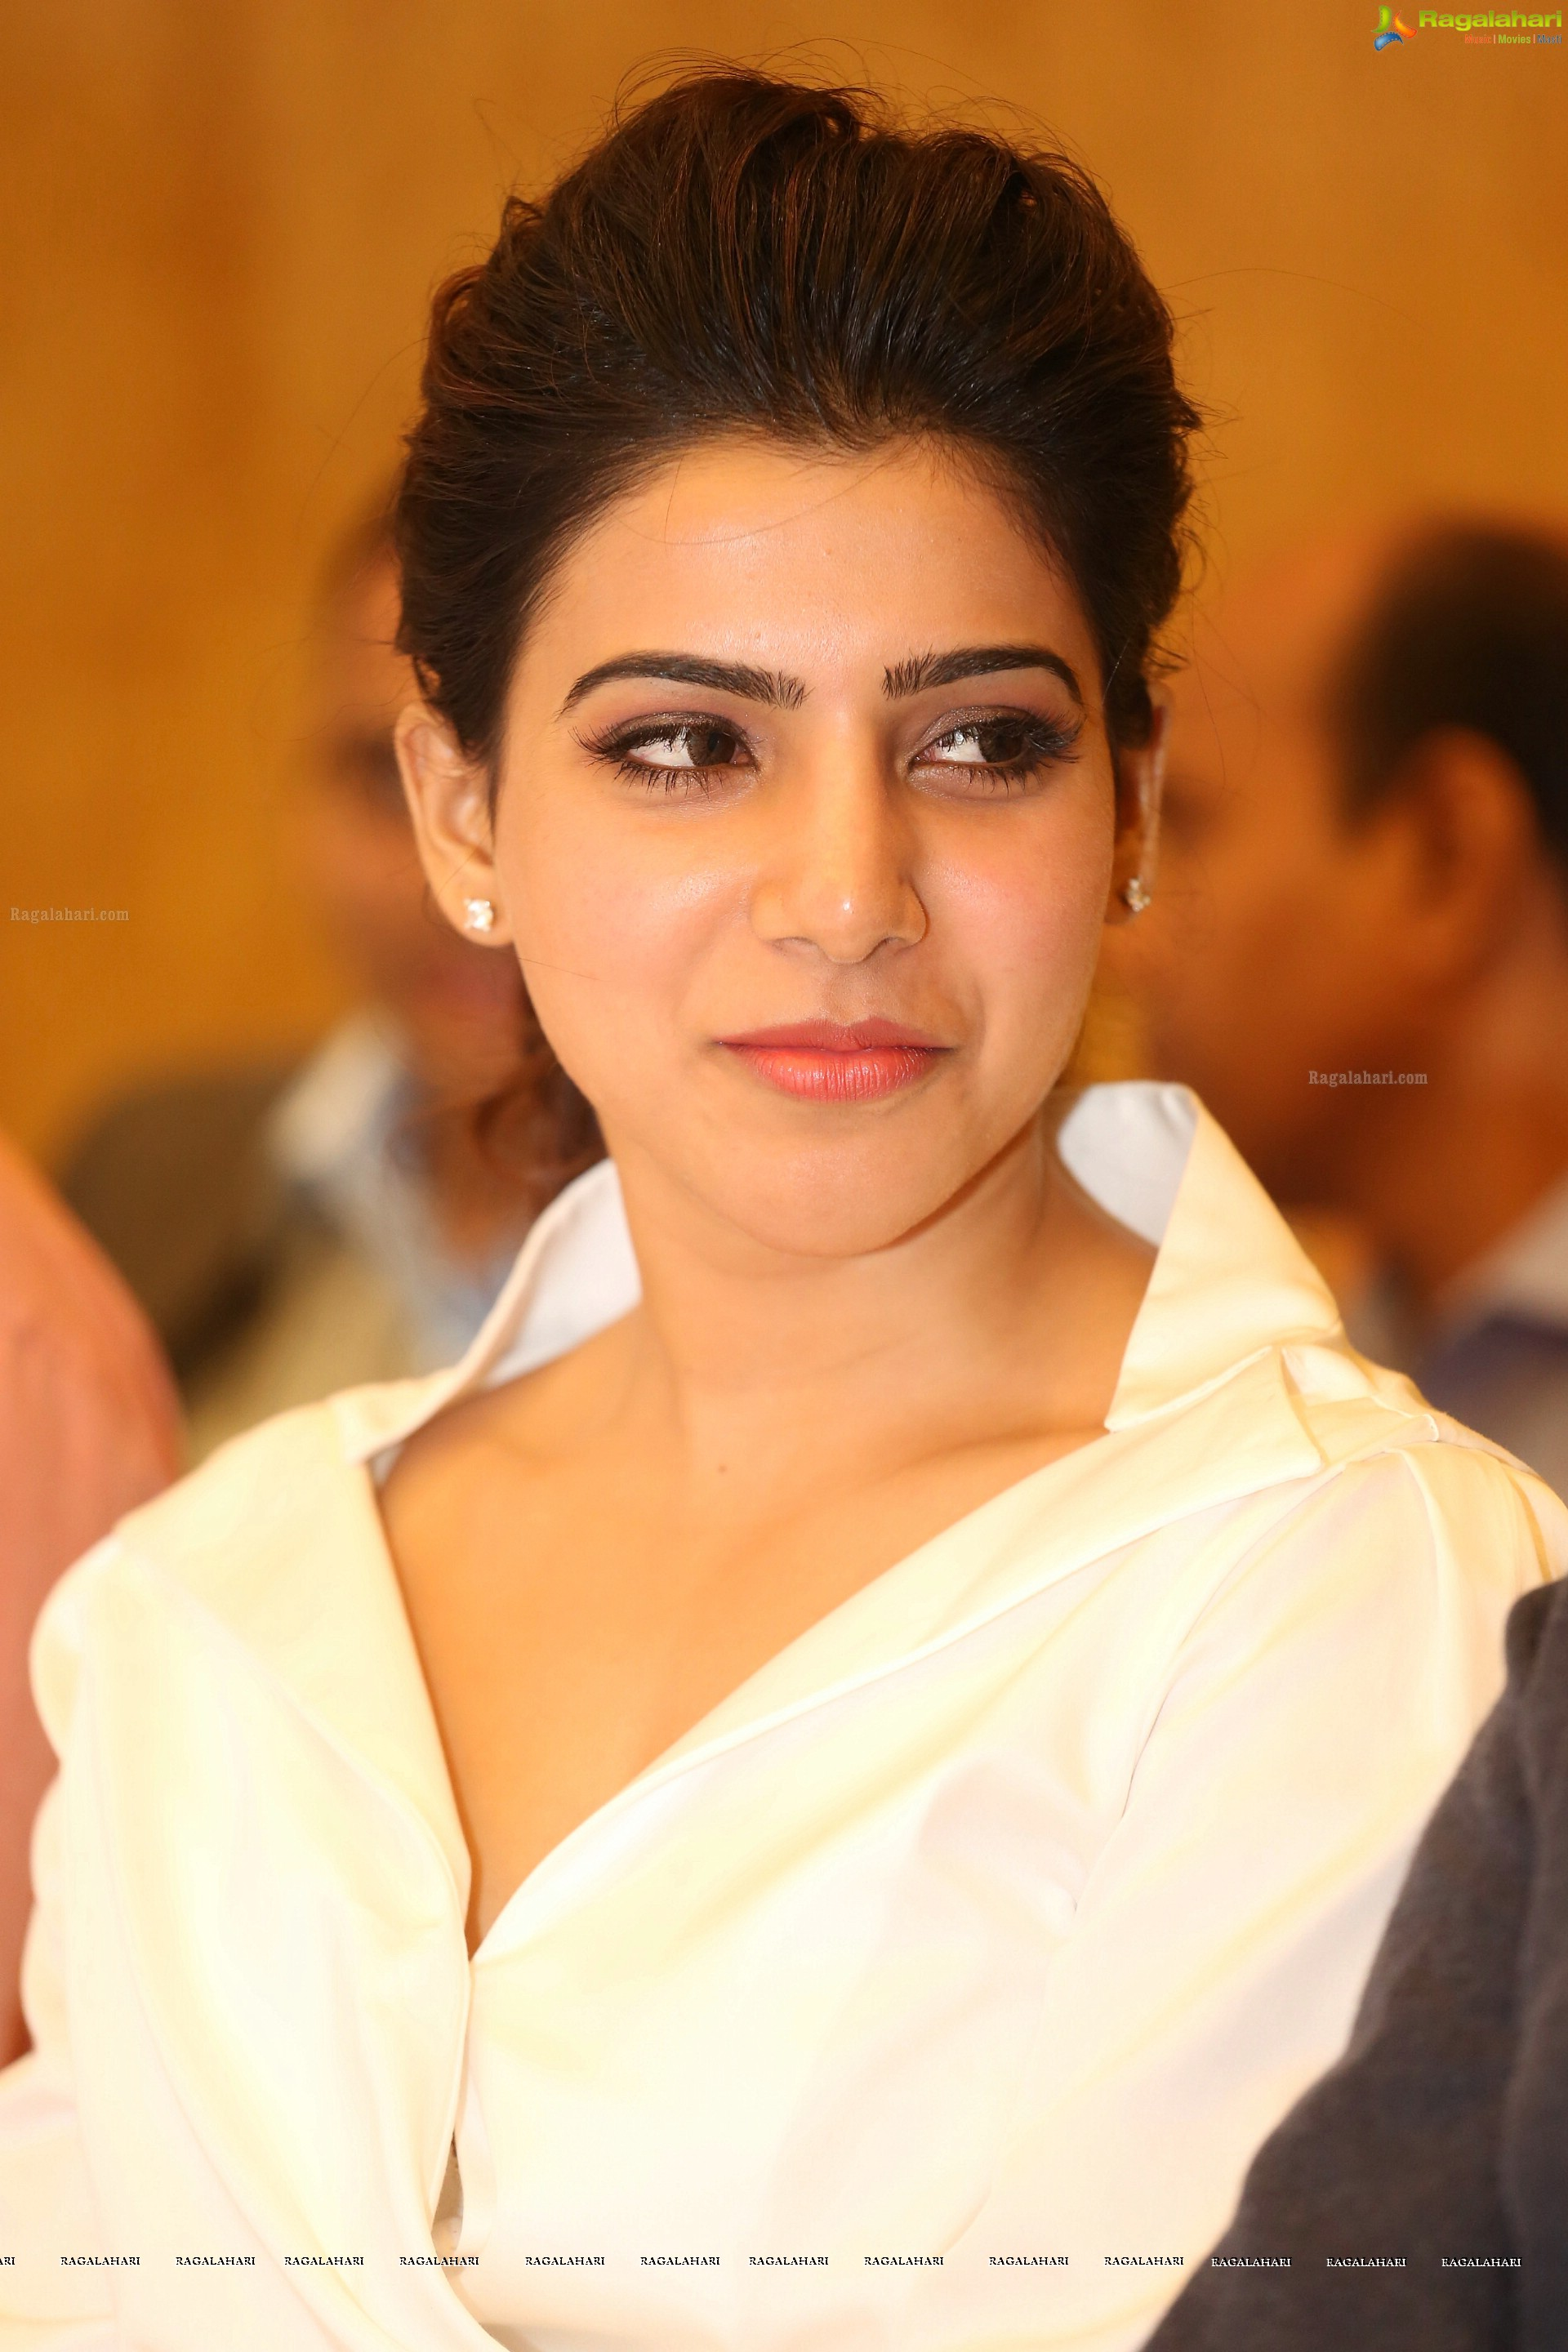 samantha (high definition) image 126 | beautiful tollywood actress